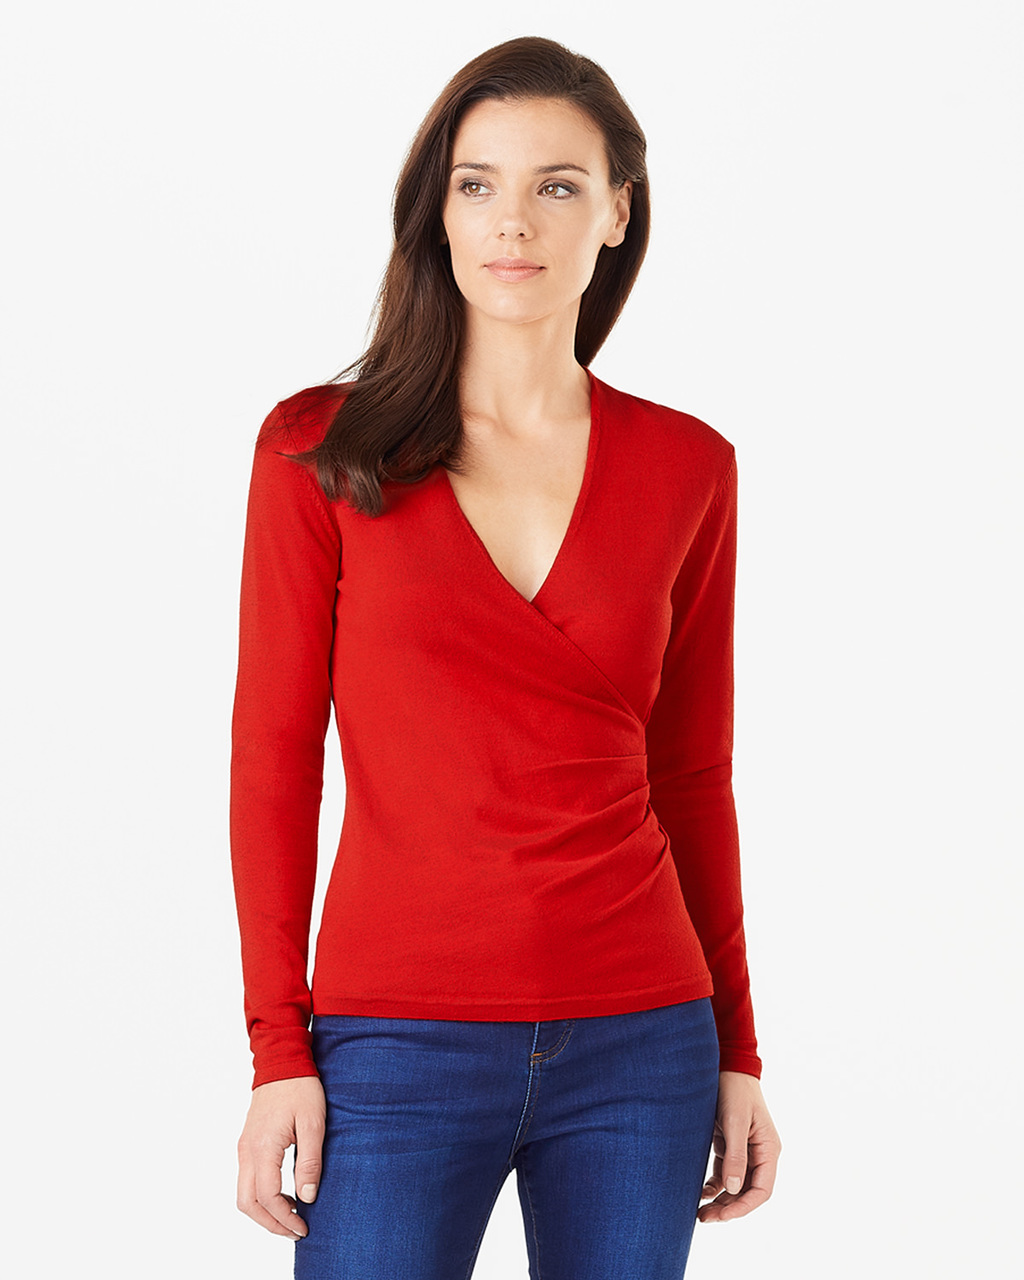 Wilma Wrap Knit - neckline: low v-neck; pattern: plain; style: wrap; predominant colour: true red; occasions: casual; length: standard; fit: slim fit; sleeve length: long sleeve; sleeve style: standard; texture group: knits/crochet; pattern type: fabric; fibres: viscose/rayon - mix; season: s/s 2016; wardrobe: highlight